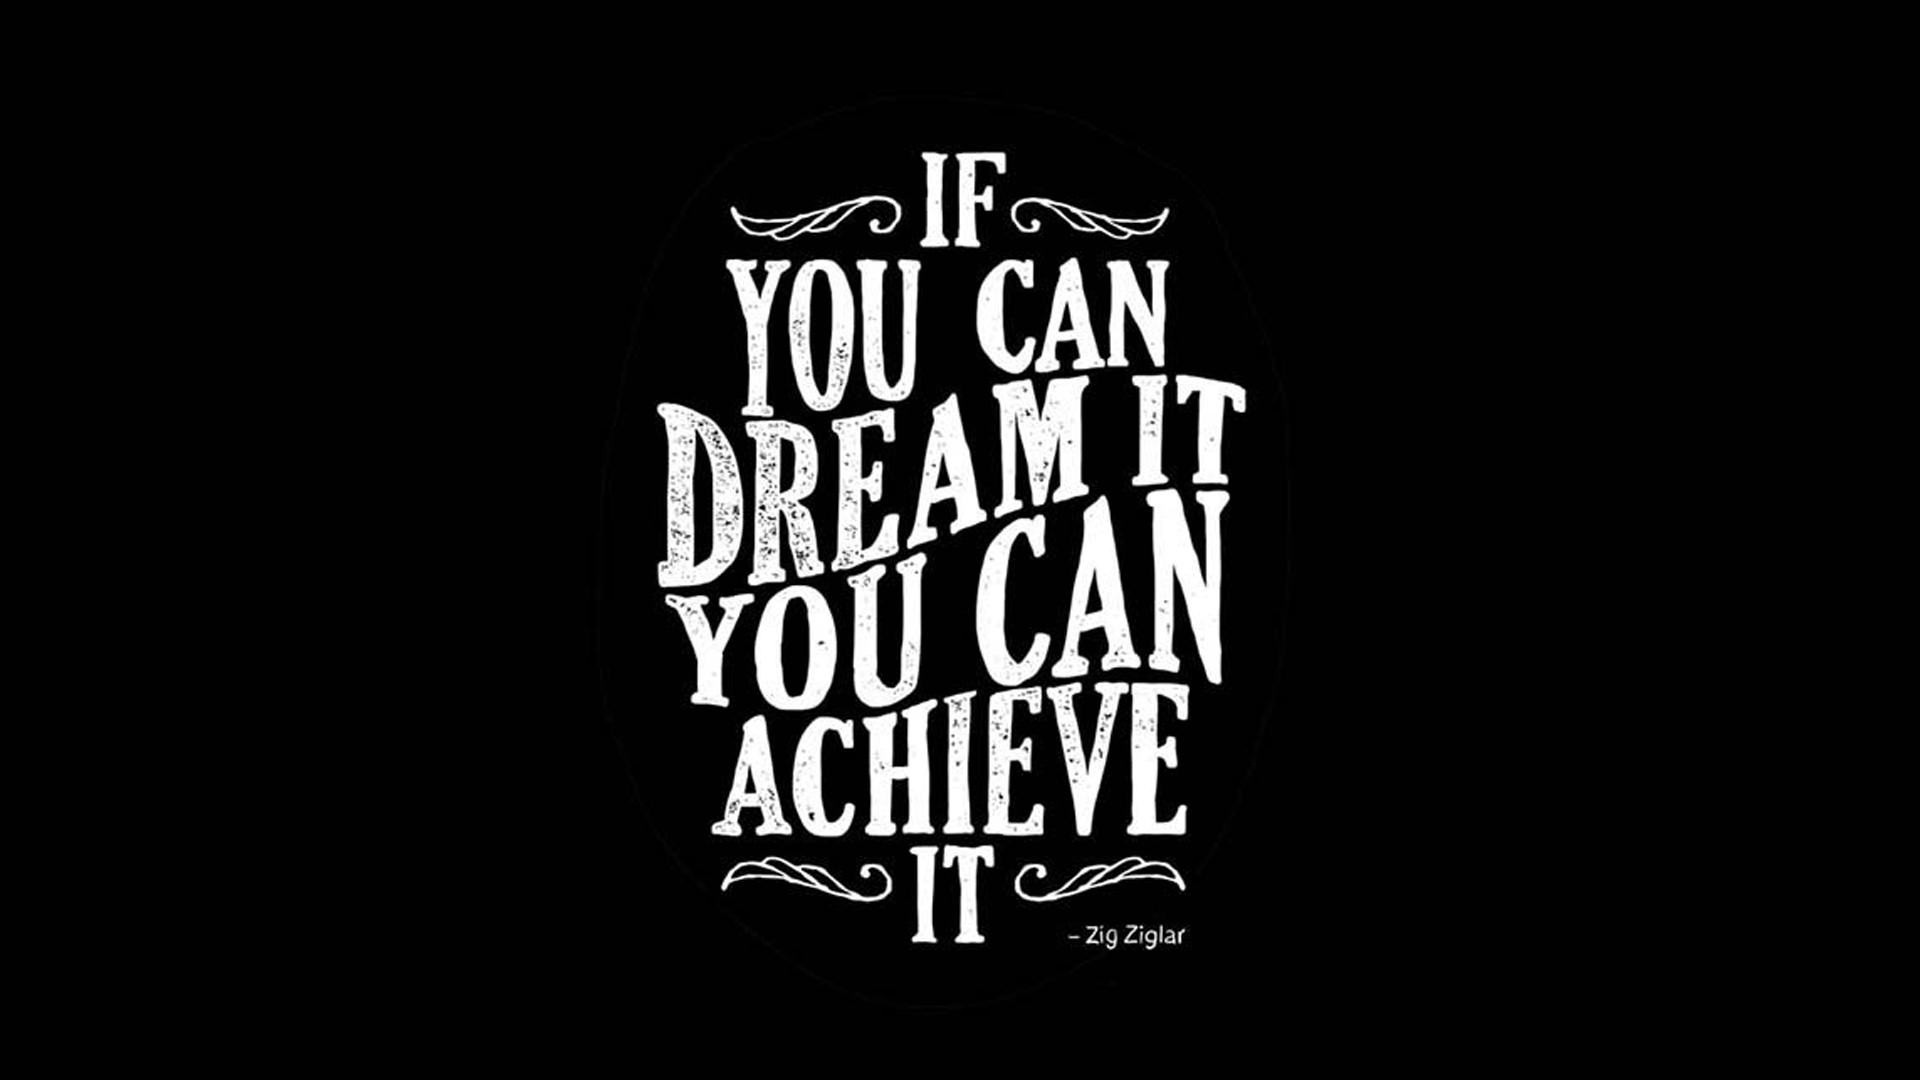 Hd Motivational Wallpapers For Android Positive Quotes Wallpaper For Iphone 75 Images